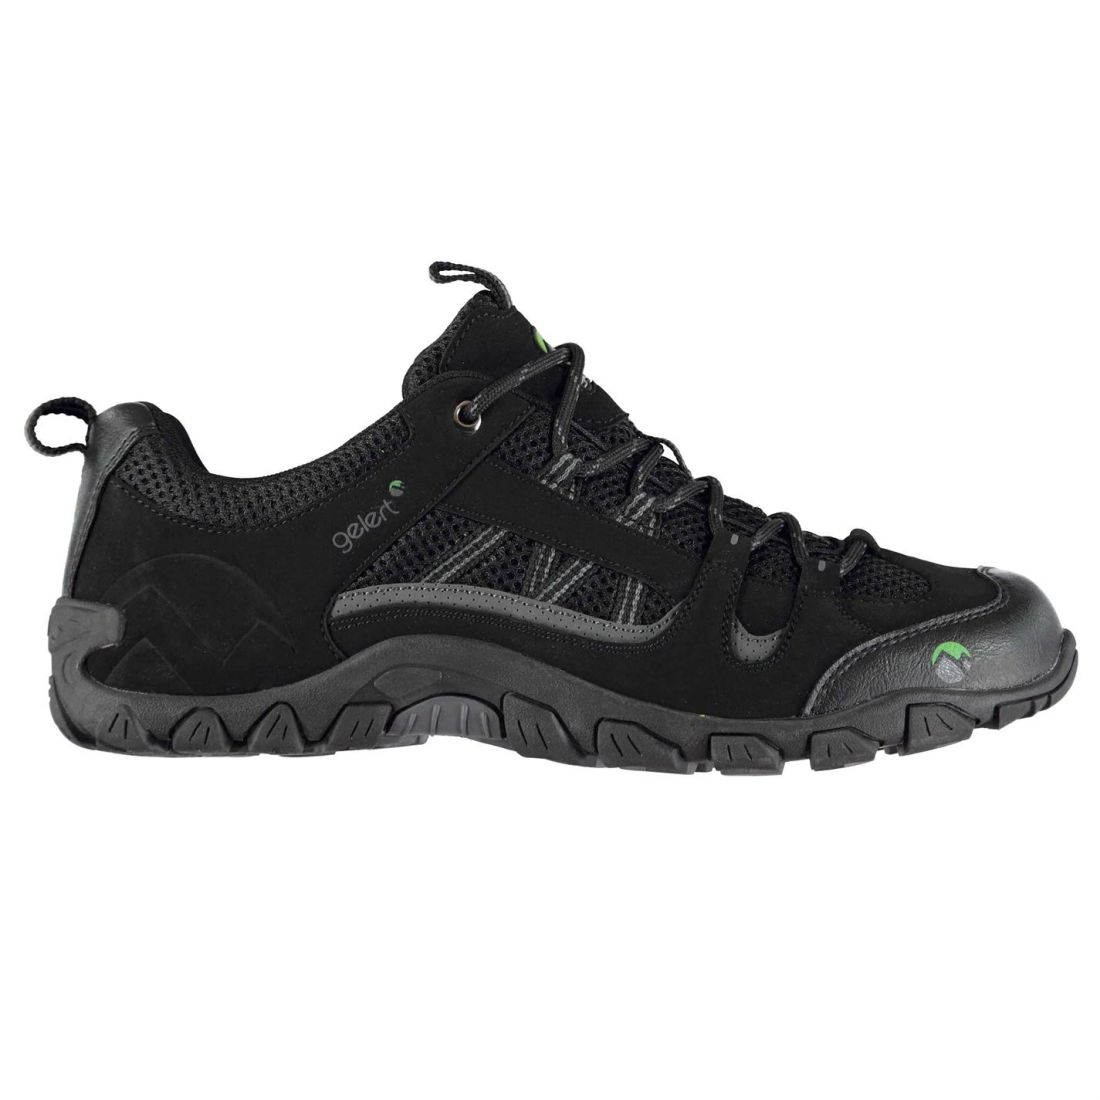 Gelert Rocky Walking Shoes Mens Gents Non Water Repellent Laces Fastened Padded